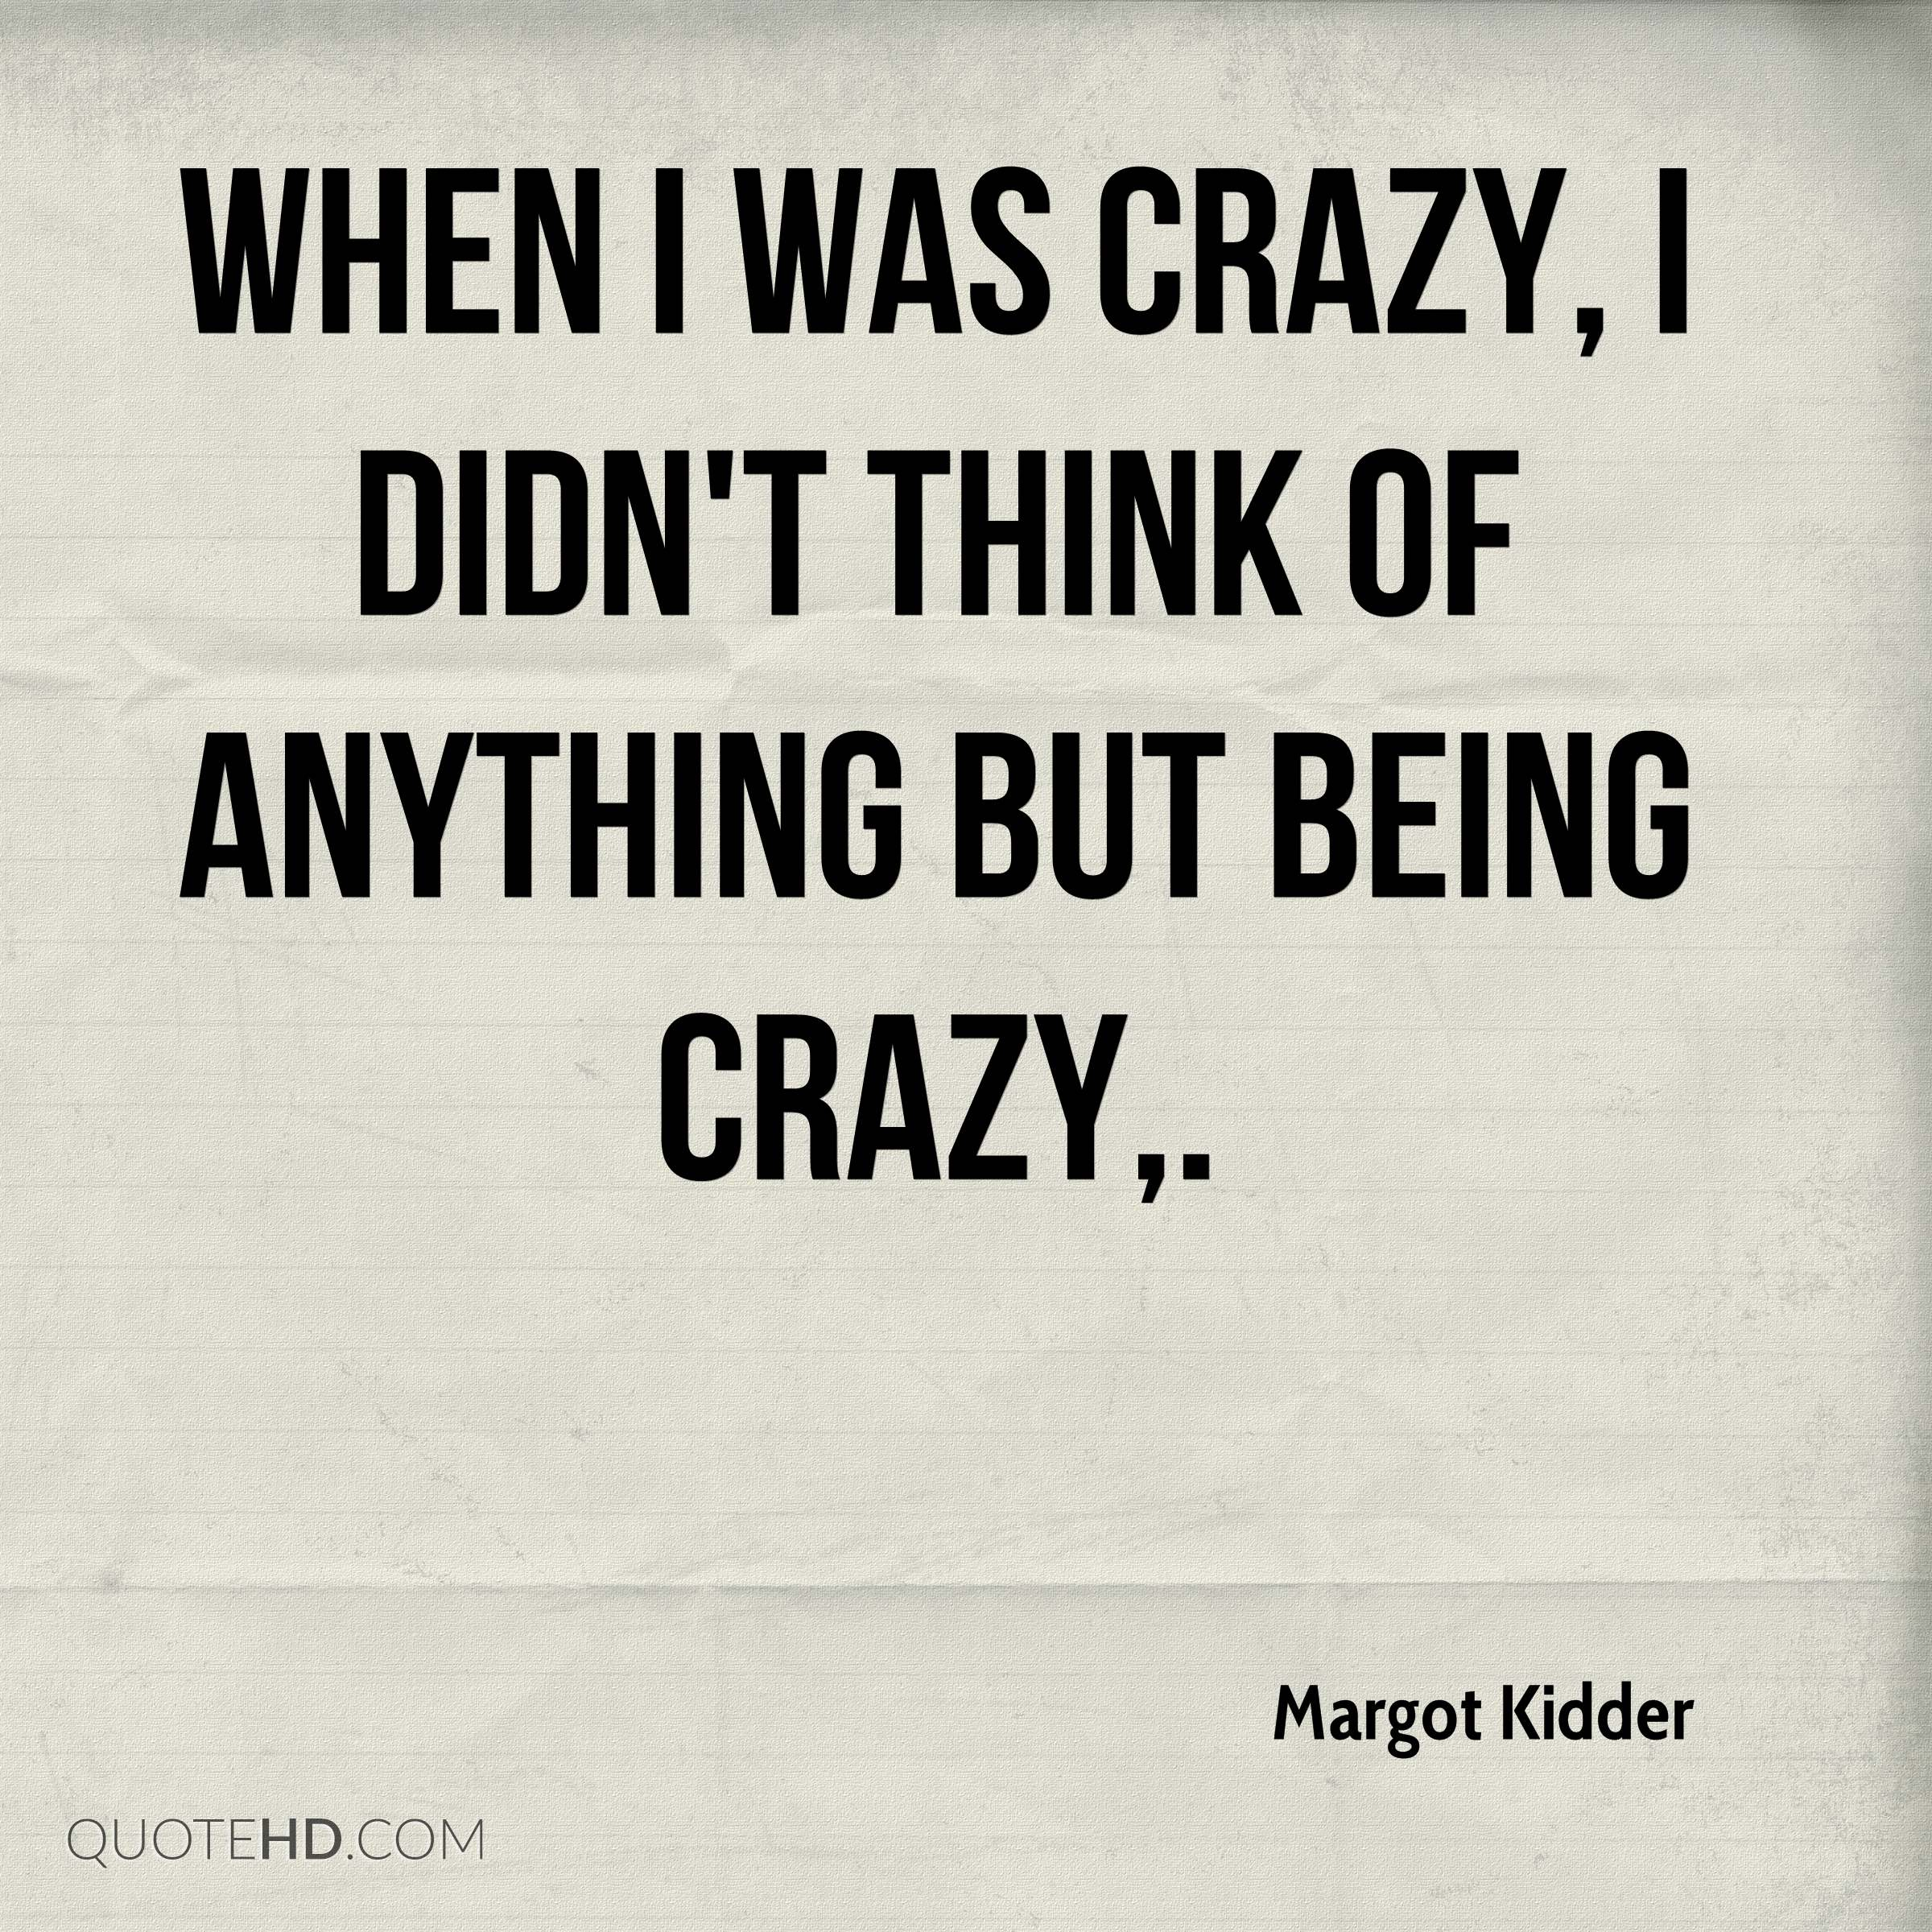 When I was crazy, I didn't think of anything but being crazy.